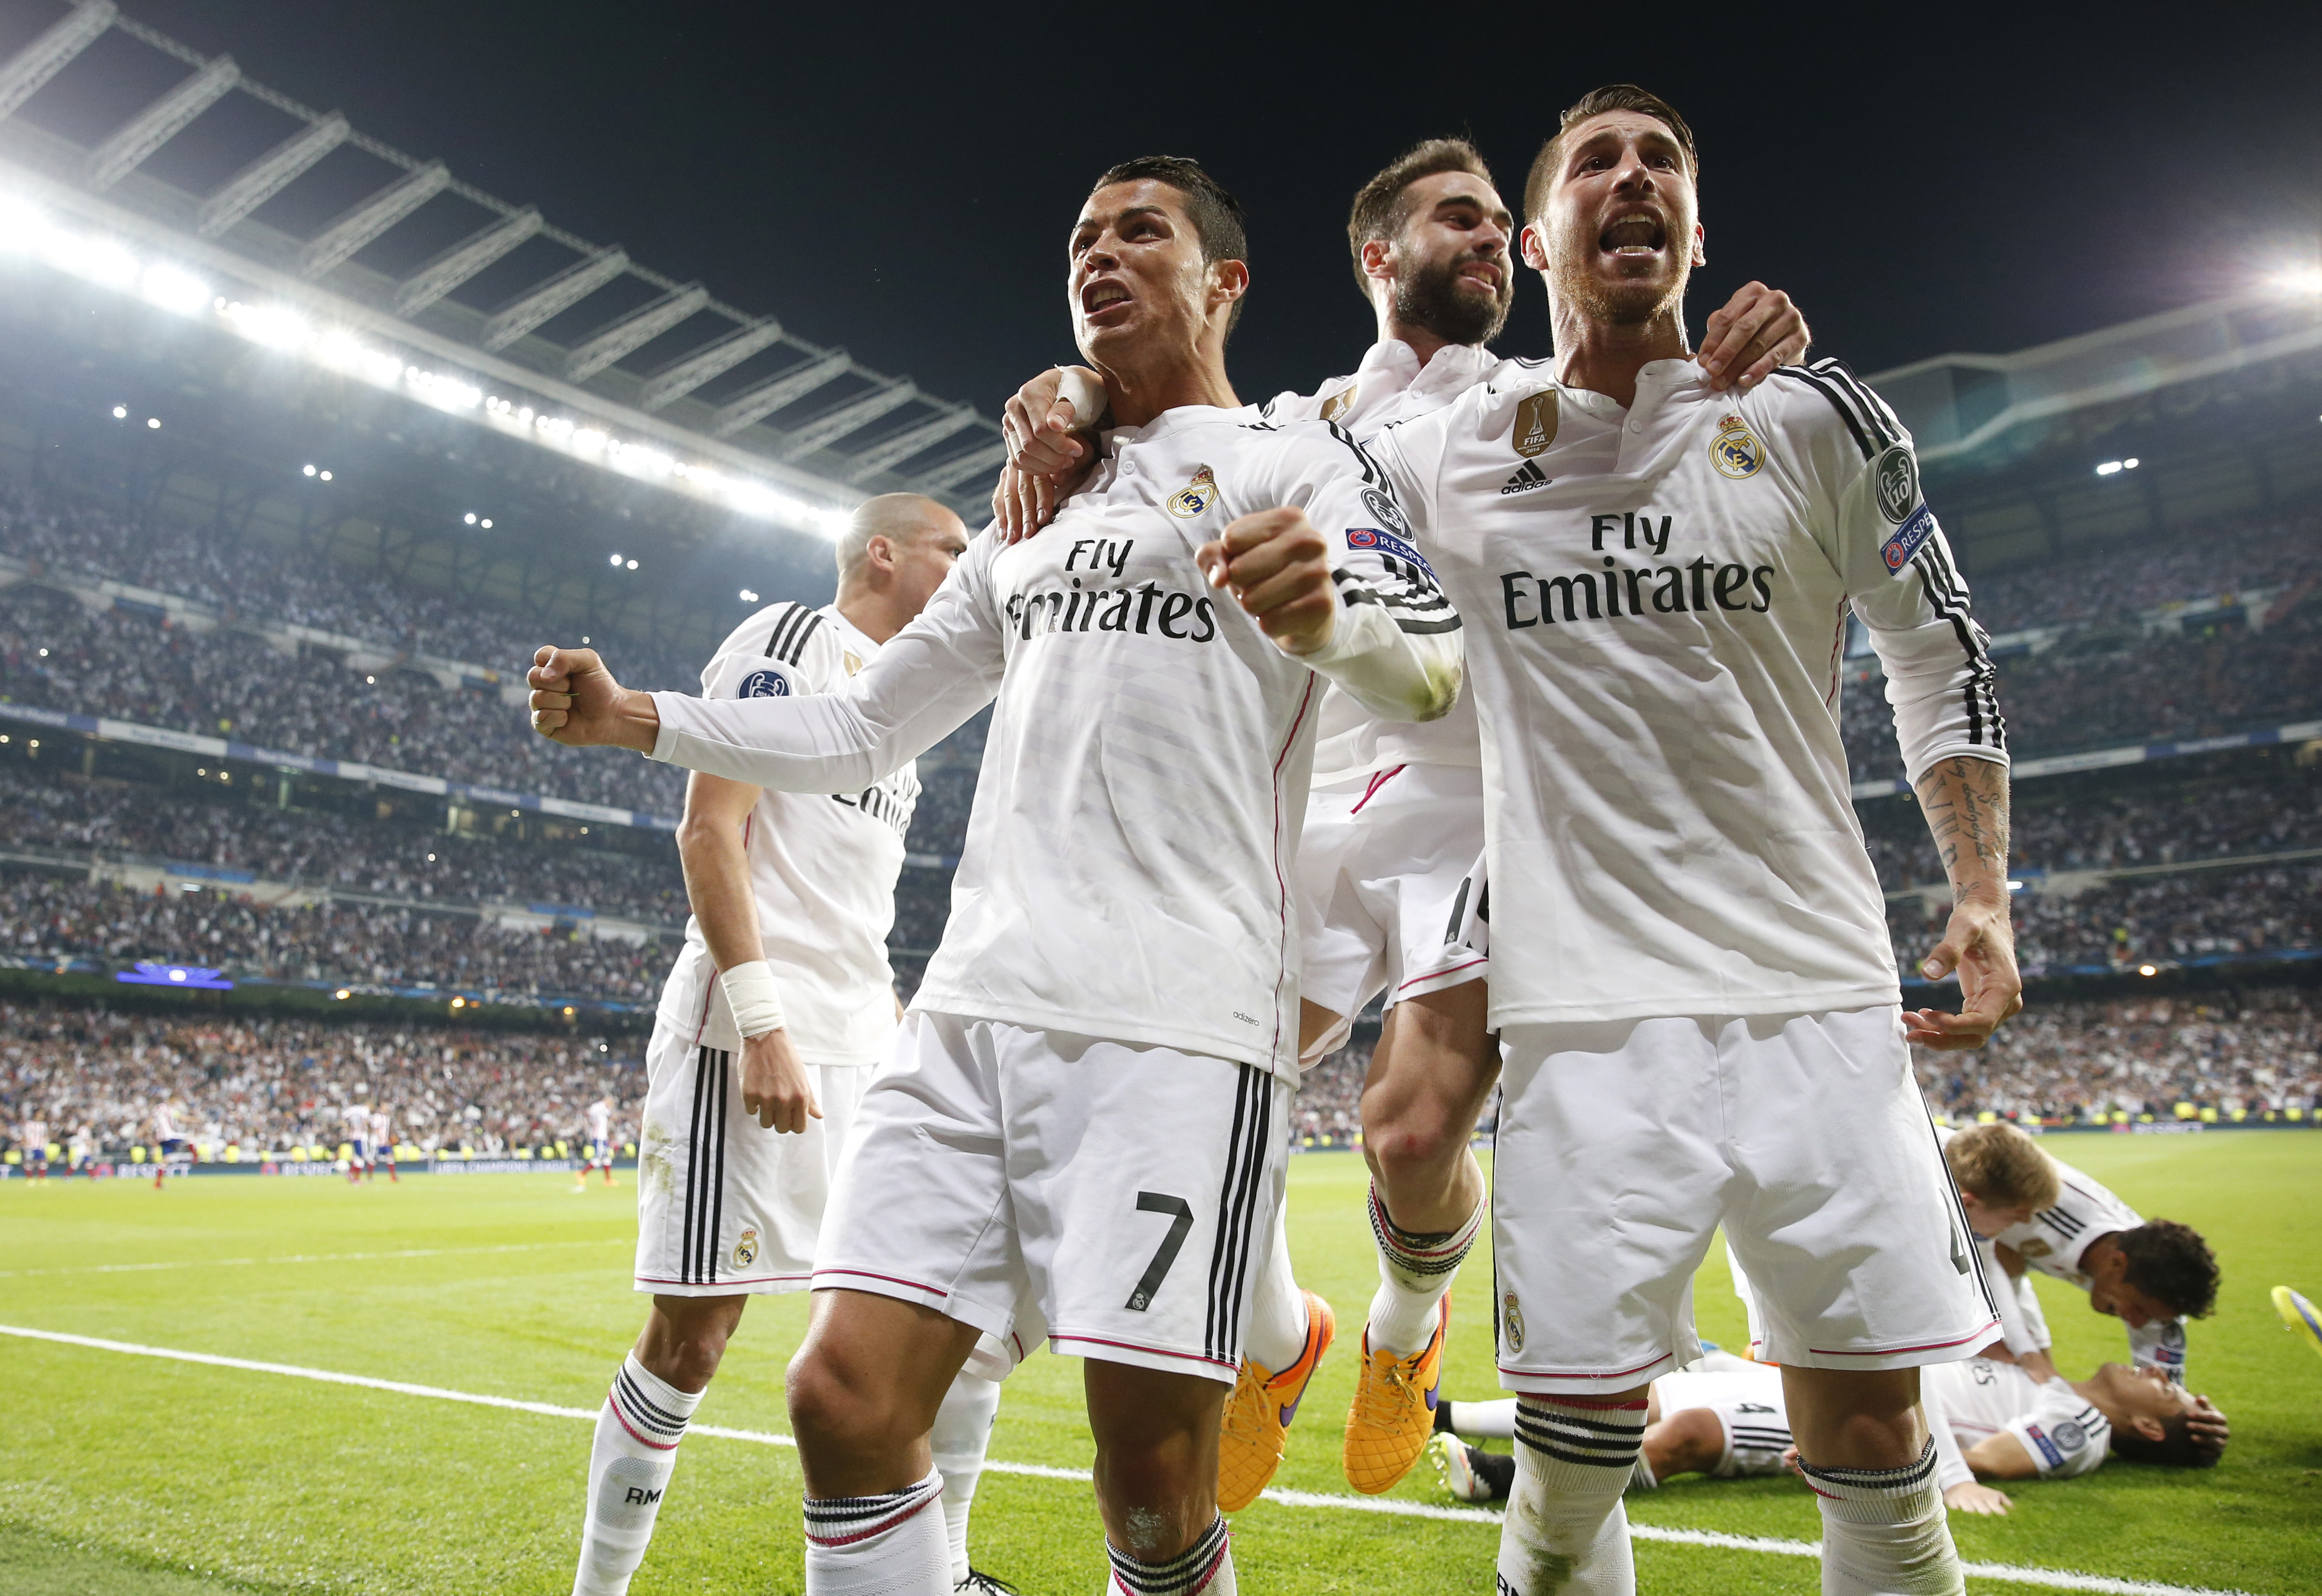 Cristiano Ronaldo, Sergio Ramos and Dani Carvajal celebrate after Javier Hernandez (not pictured) scored the first goal for Real Madrid